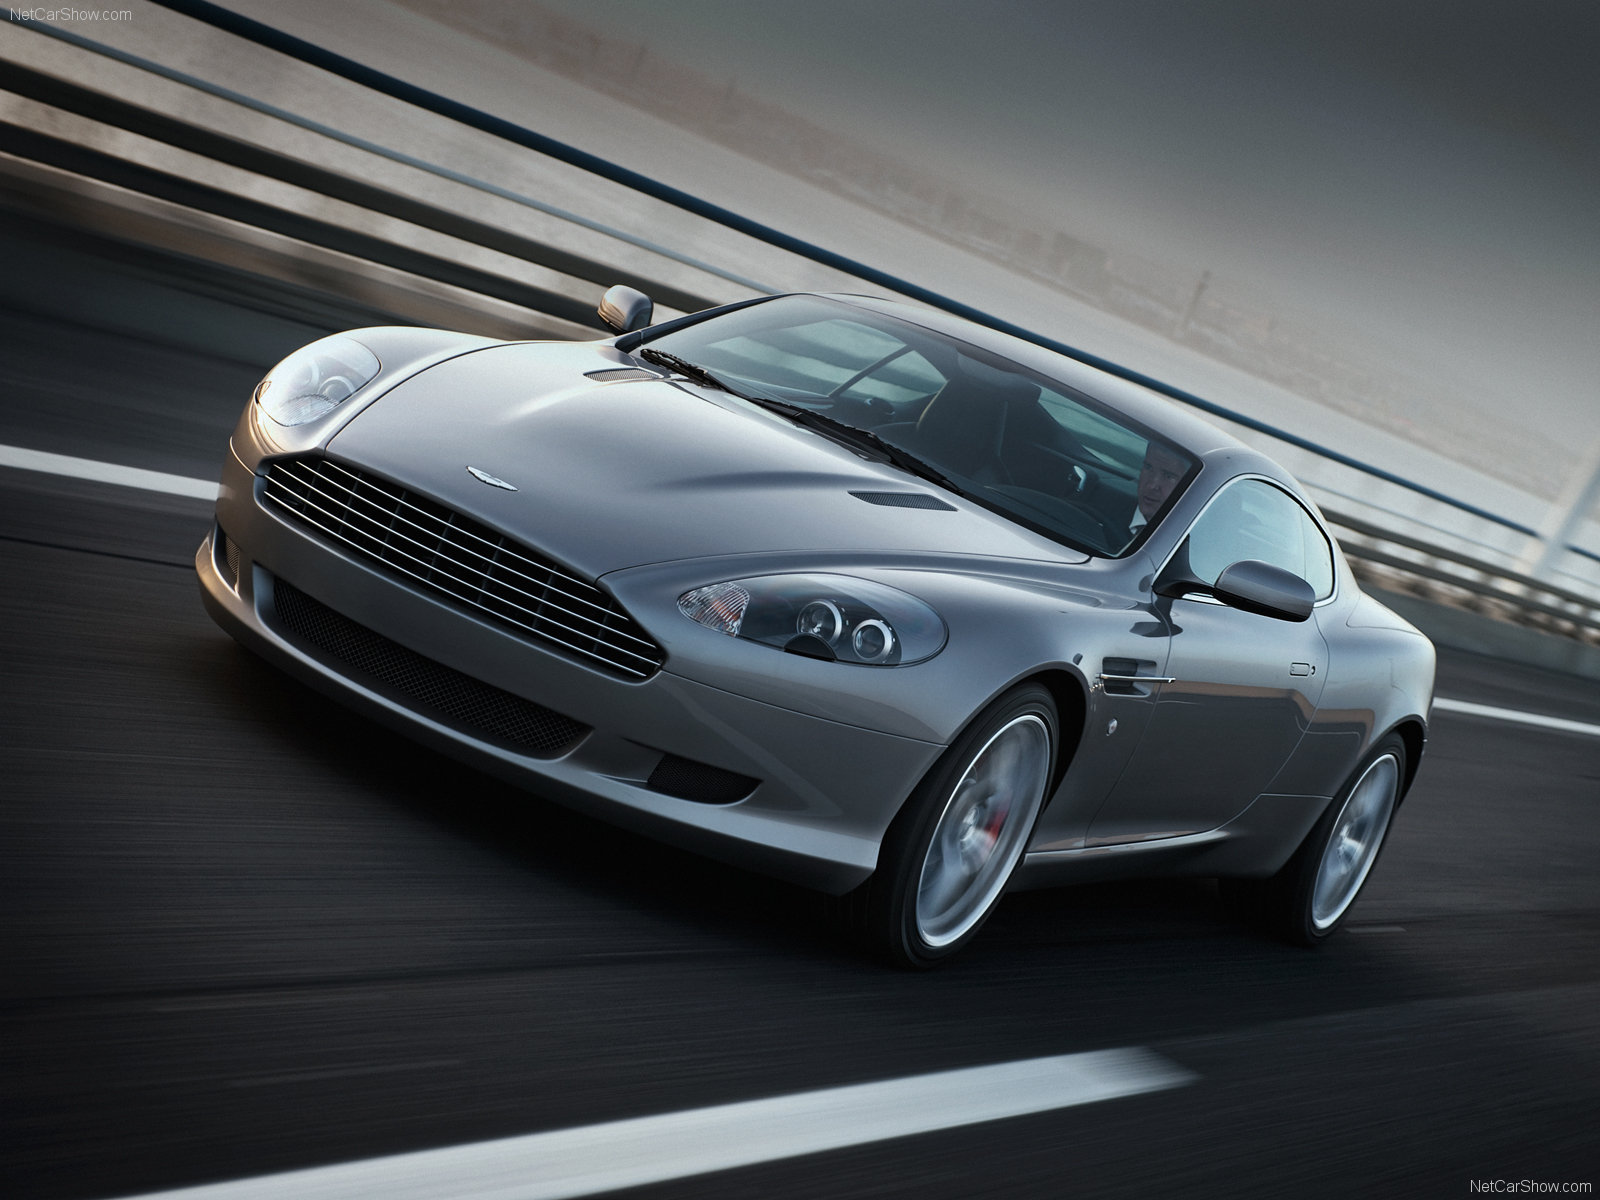 2019 Aston Martin DB9 photo - 2